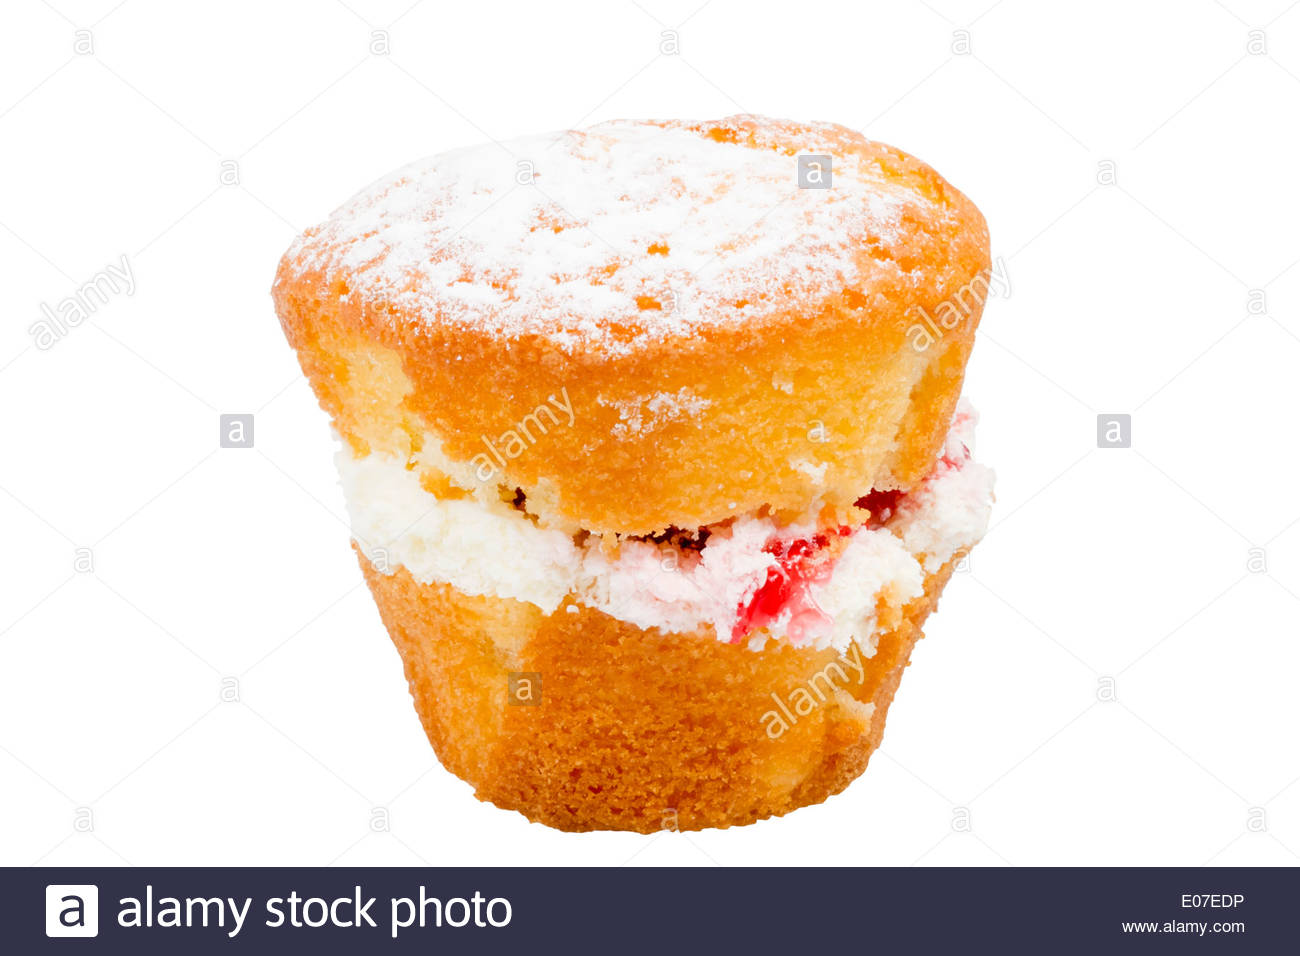 Muffin with fresh cream & strawberry jam cut out against a white background. - Stock Image